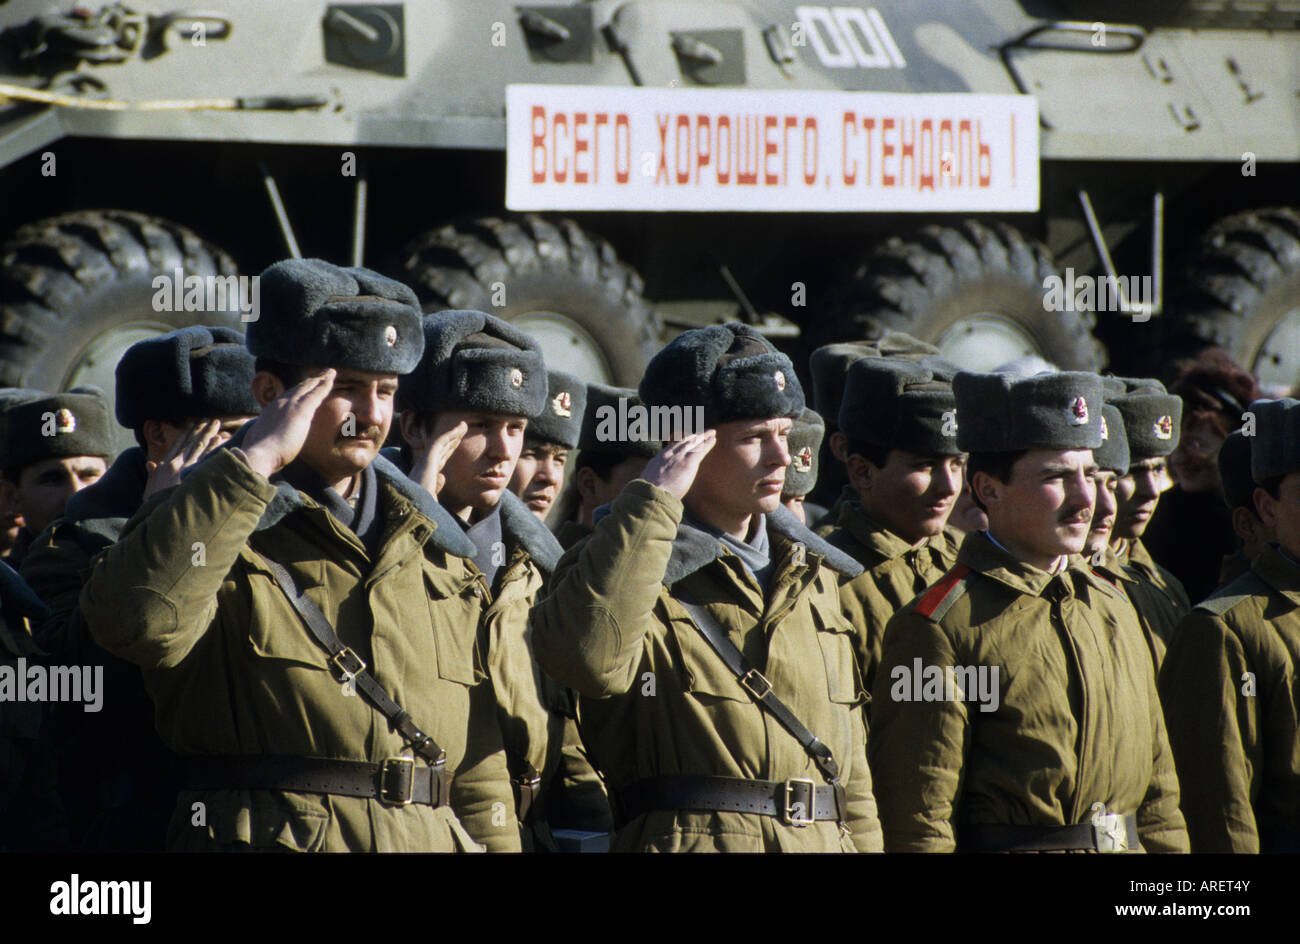 Soviet Armed Forces / Soviet Army (1946-1991) - Page 5 Russian-soldiers-salute-in-front-of-armoured-vehicles-on-a-train-during-ARET4Y